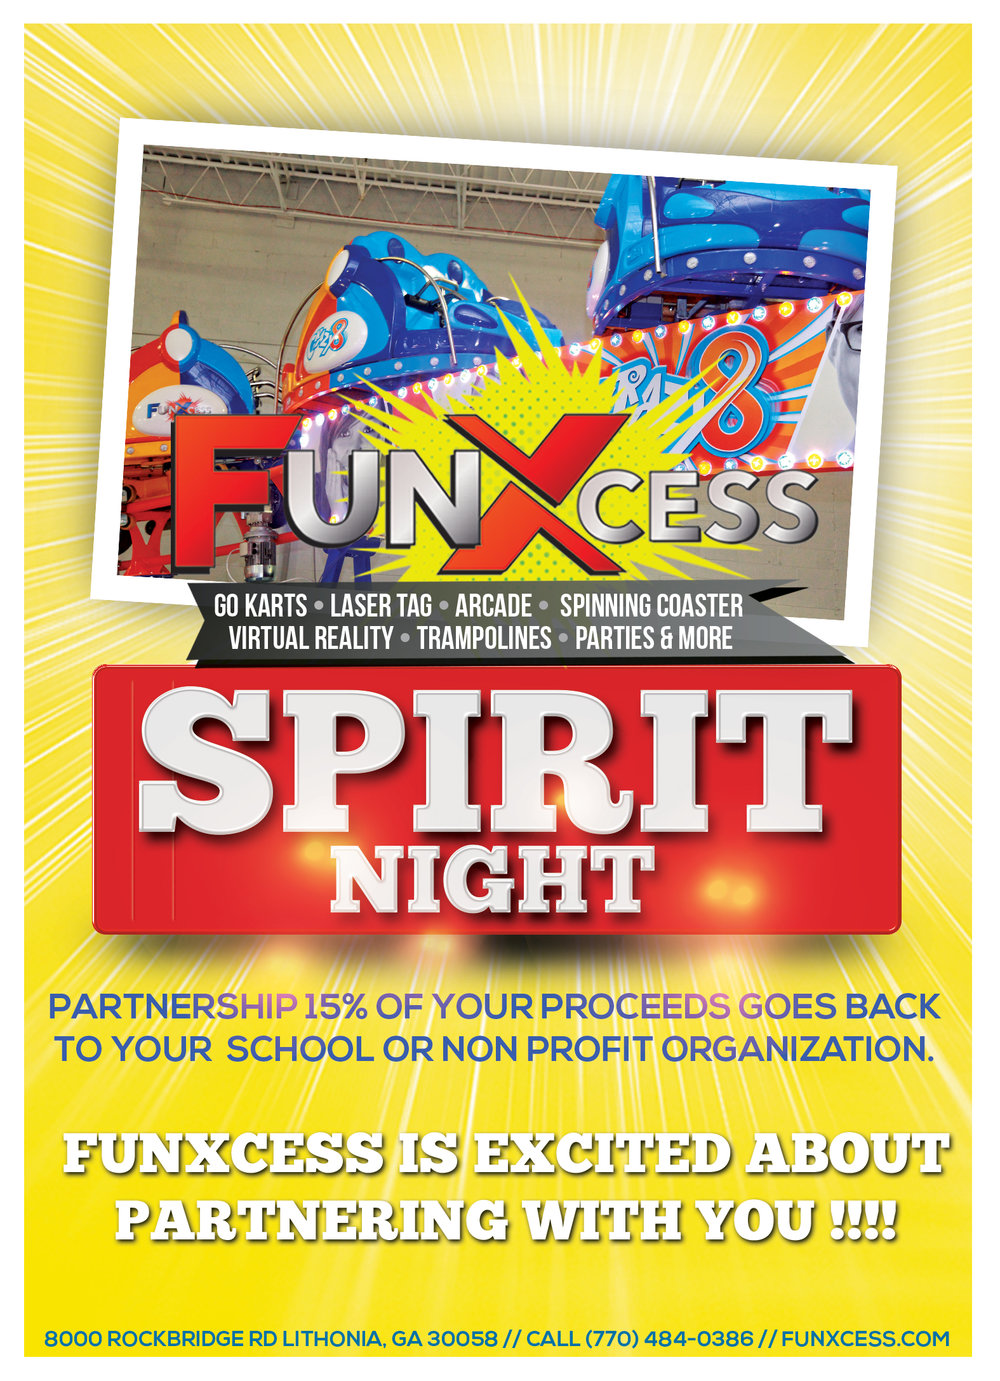 FunXcess Spirit Night - Does your school, organization, team, or church have spirit? We invite you to host a spirit night with us. Partner with us to host your small group of 25 or more people and we will donate 15% of our sales (not including food items) back to your school or non profit organization.If you are interested in hosting a Spirit Night with us fill out this brief form below about your school or organization information. One of our FunXcess Spirit Representative will contact you to setup all the details.